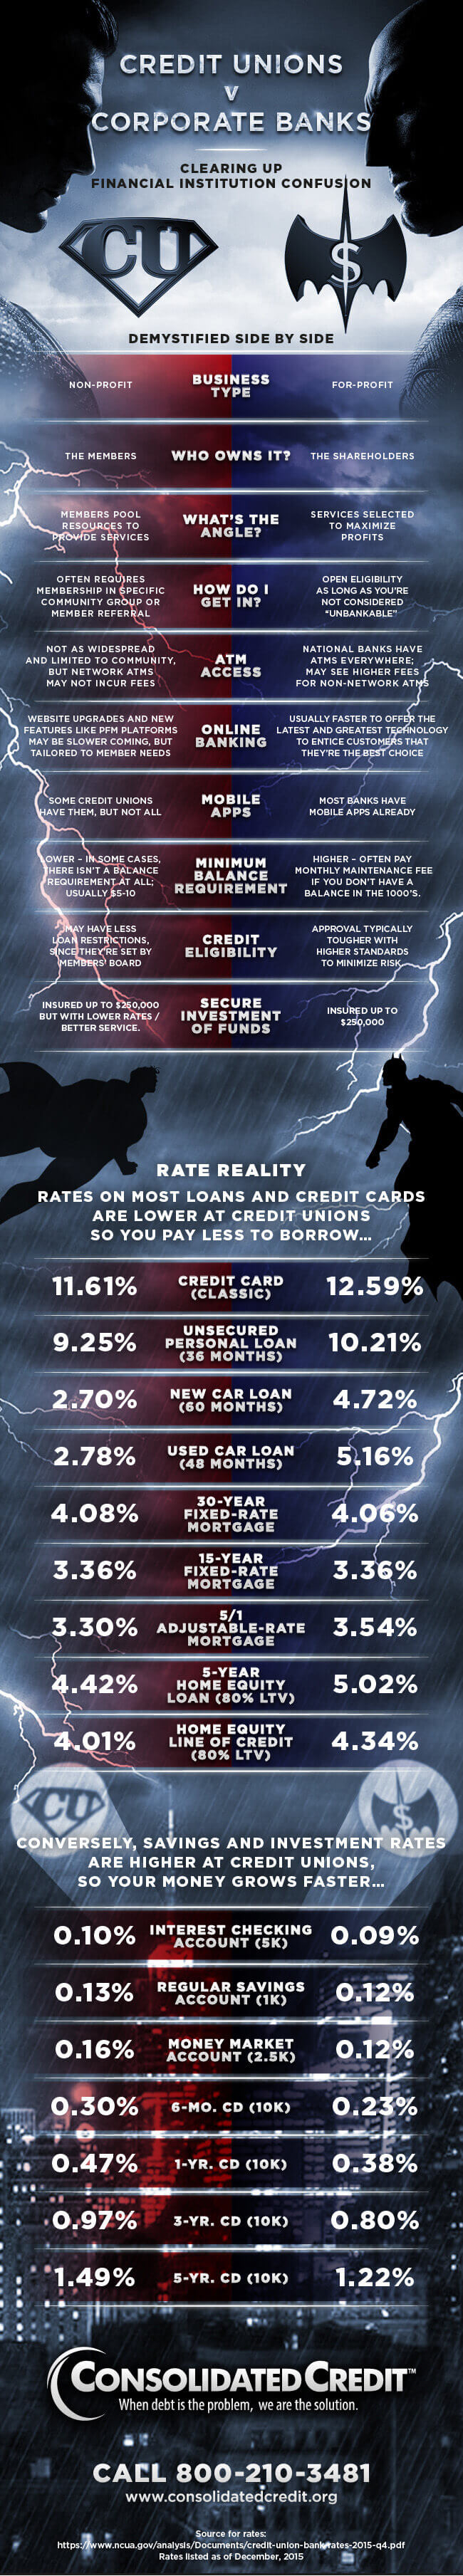 Key differences between credit unions and banks